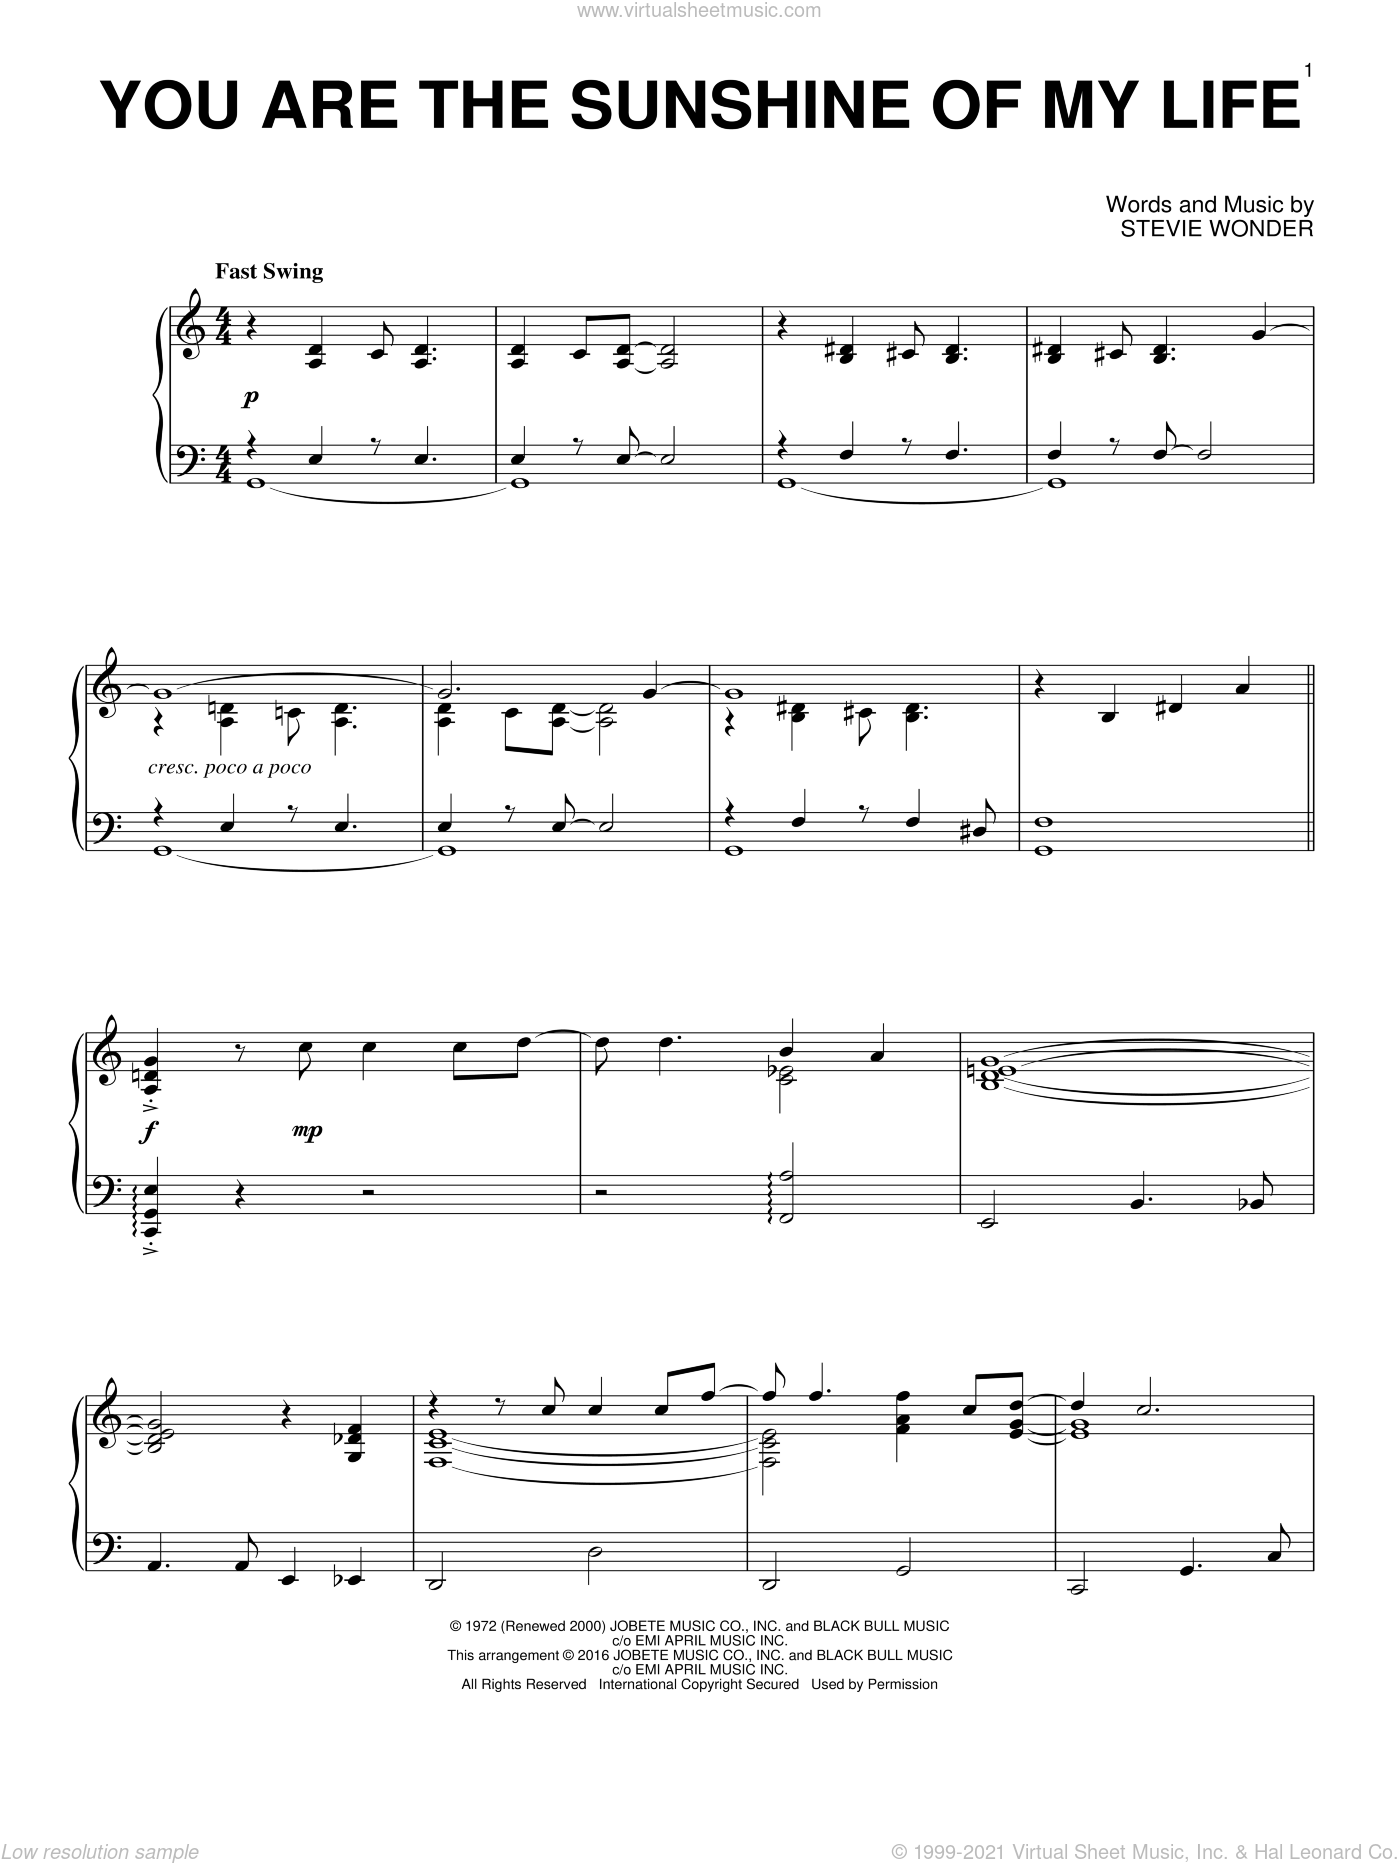 You Are The Sunshine Of My Life [Jazz version] sheet music for piano solo by Stevie Wonder, intermediate skill level